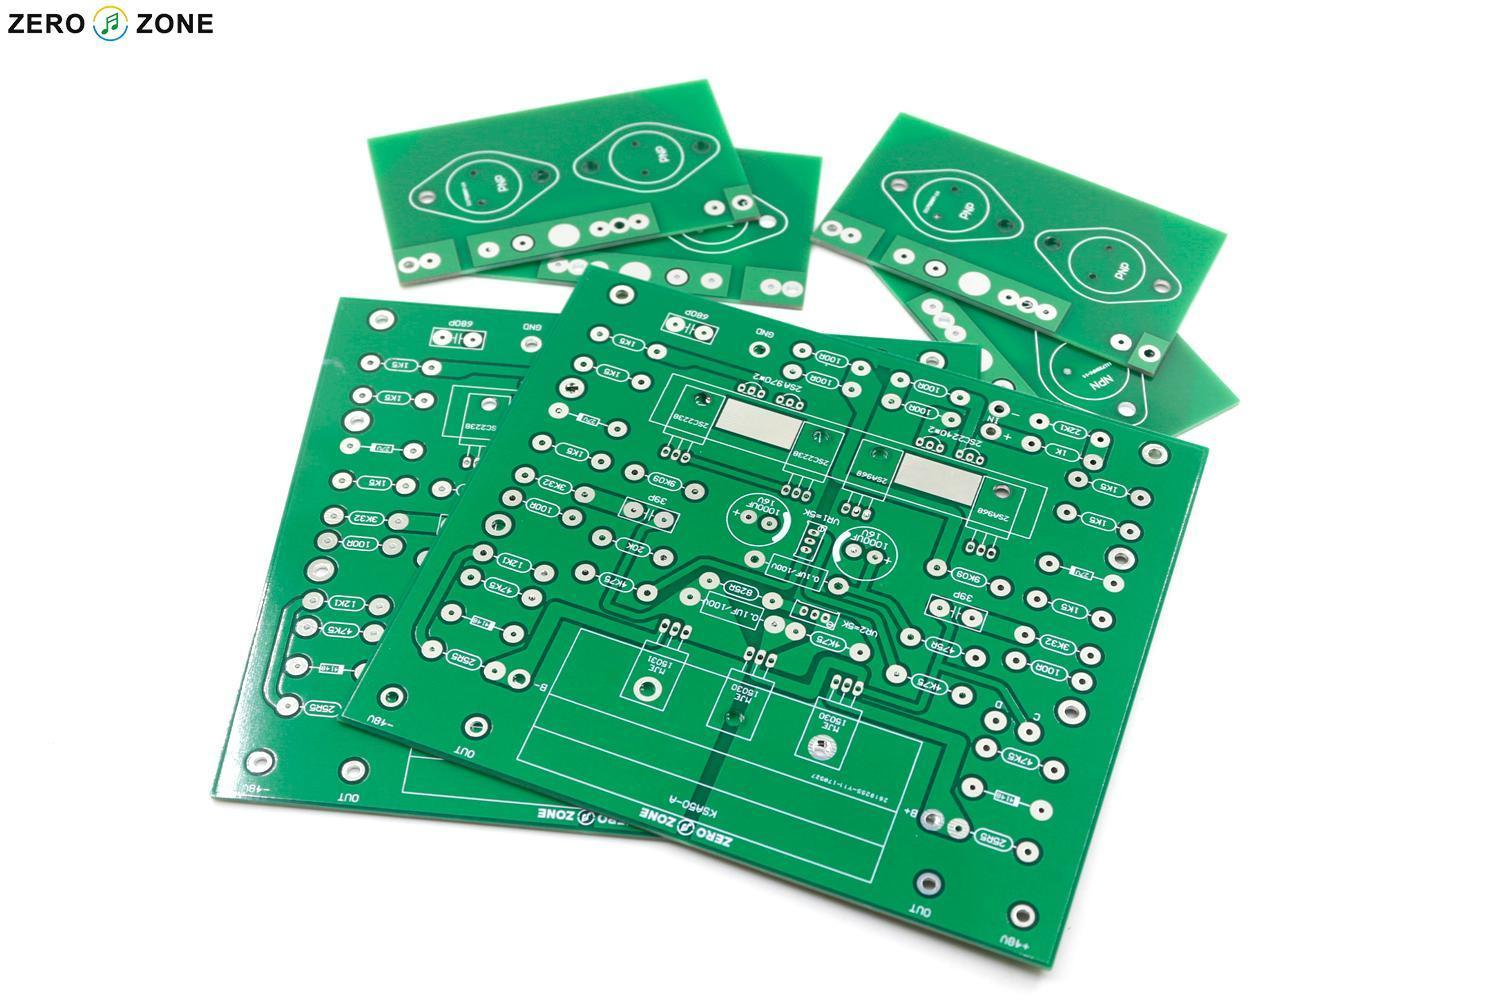 GZLOZONE 1 : 1 KRELL KSA-50MK2 Class A Power Amplifier PCB KSA50 Amp PCB DIY krell illusion